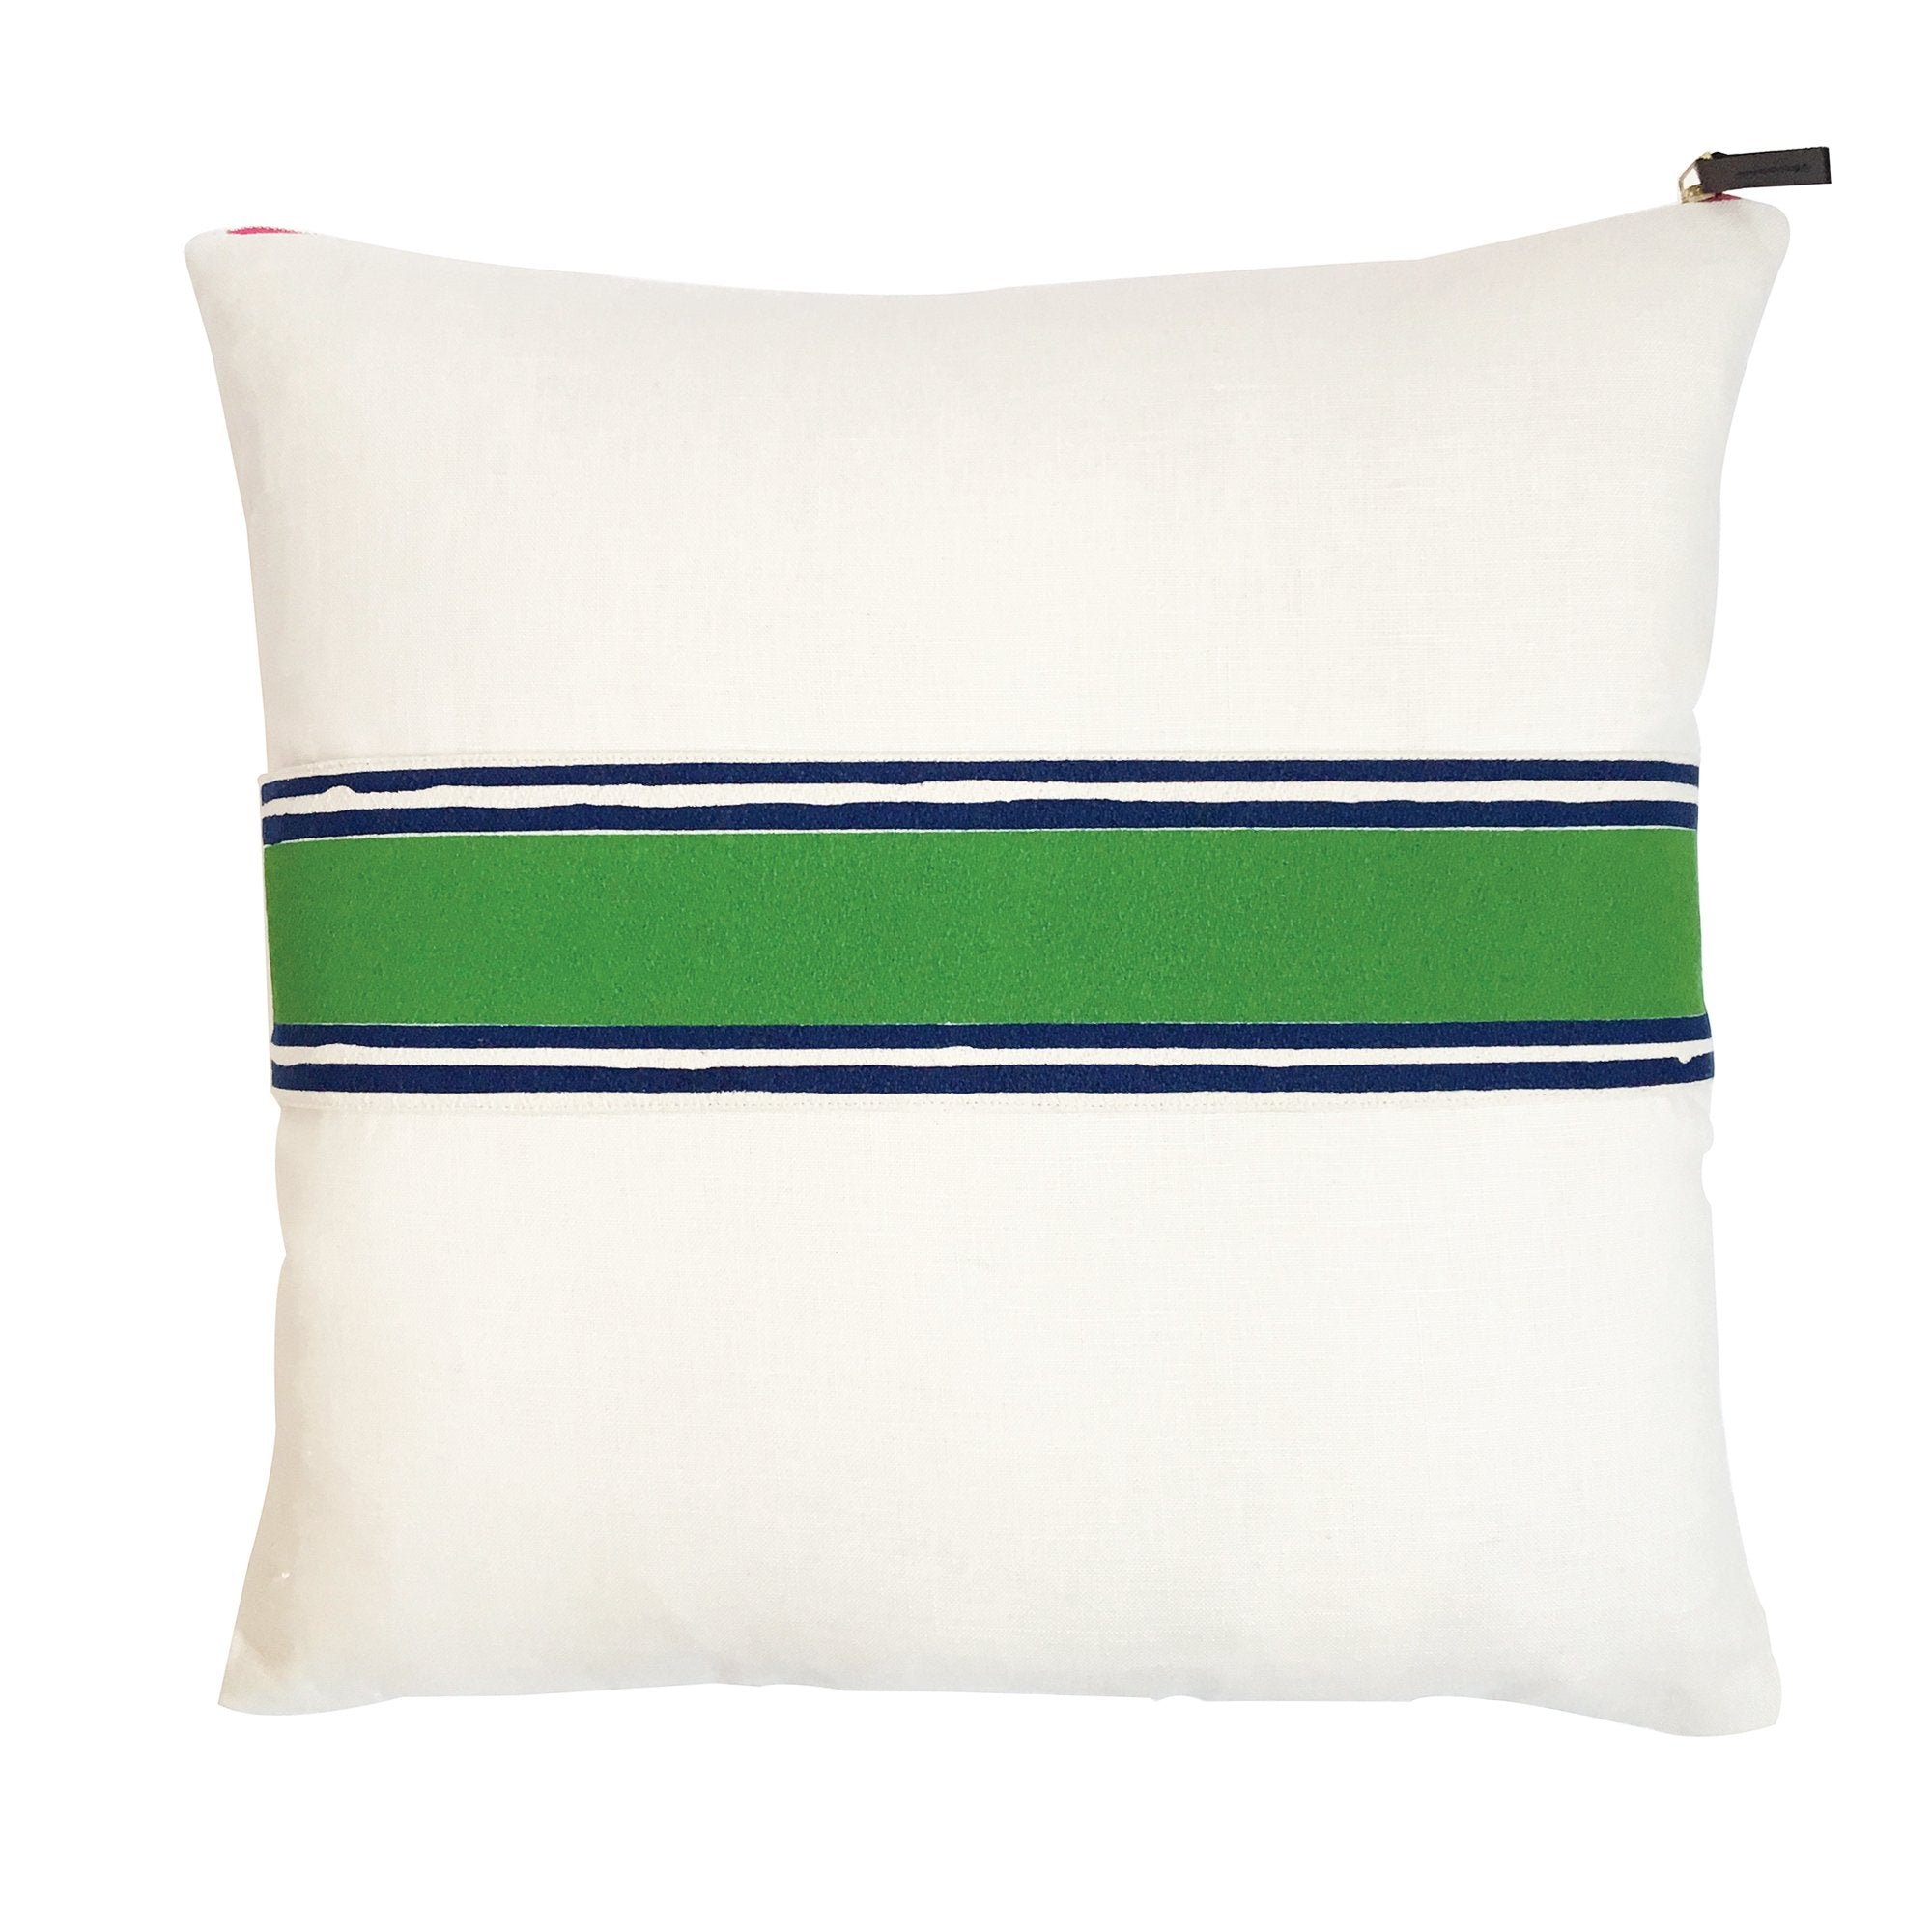 KELLY + NAVY TWO COLOR BAND ON OYSTER LINEN PILLOW